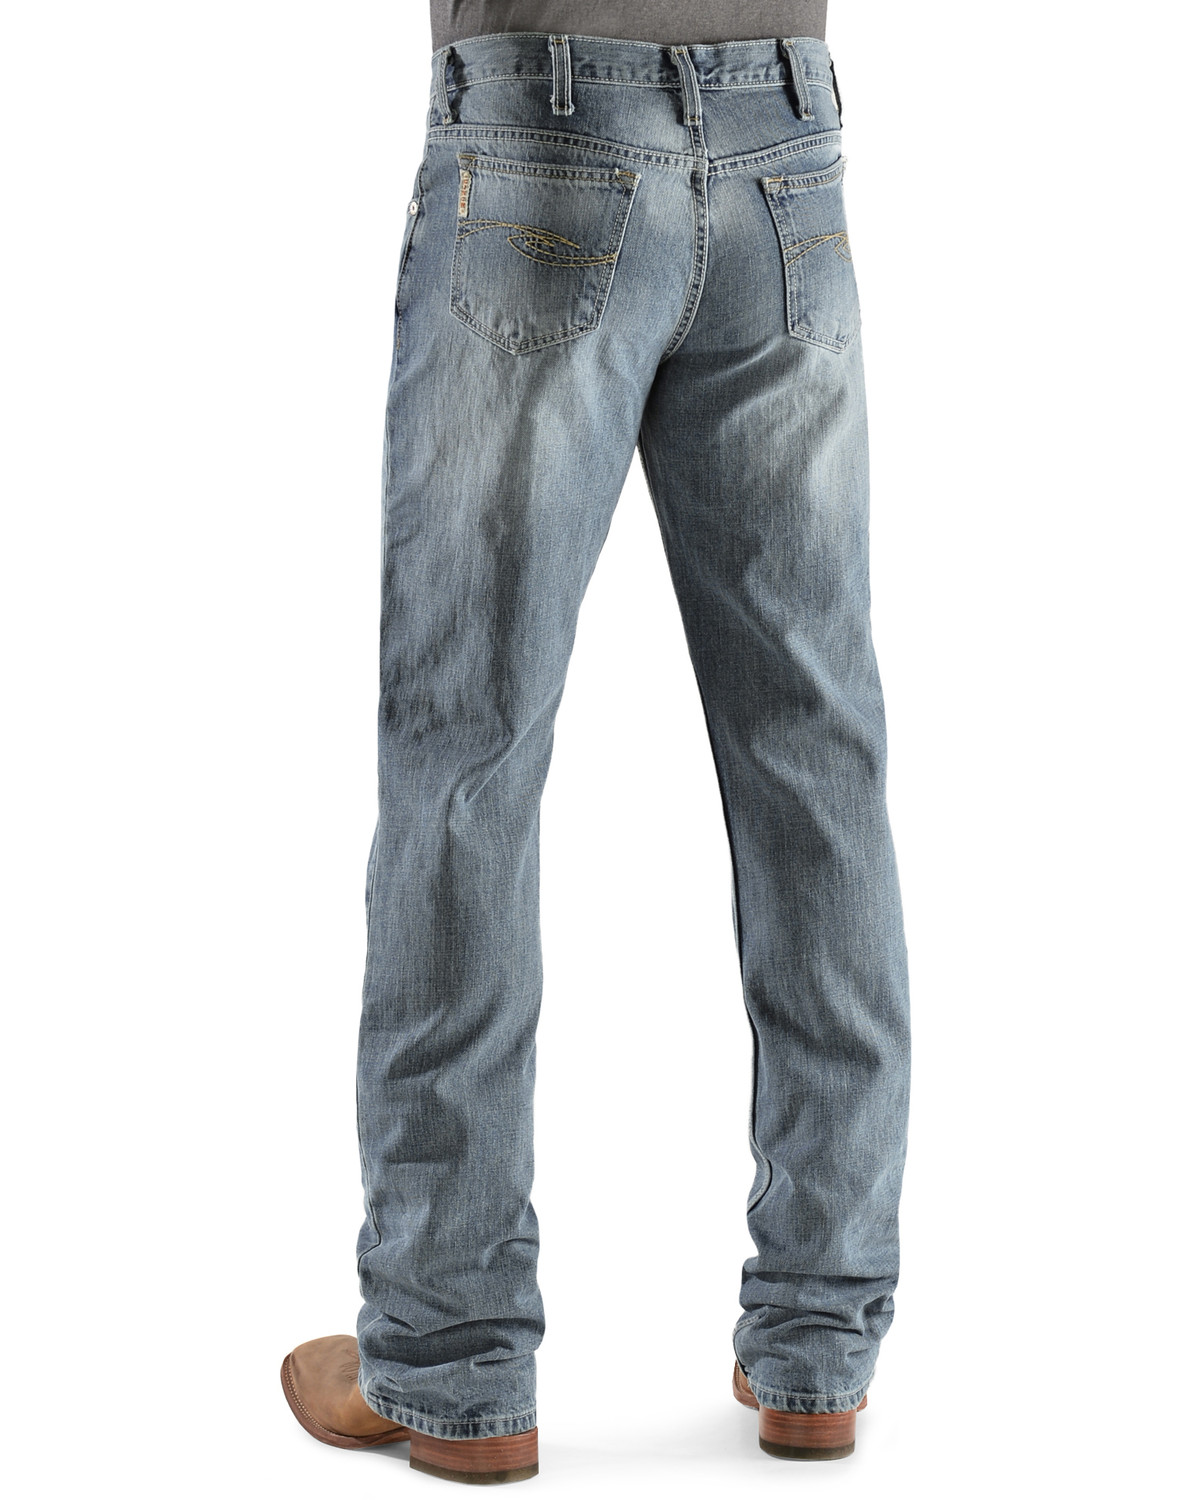 Mens Cinch Dooley Jeans Dark Stonewash